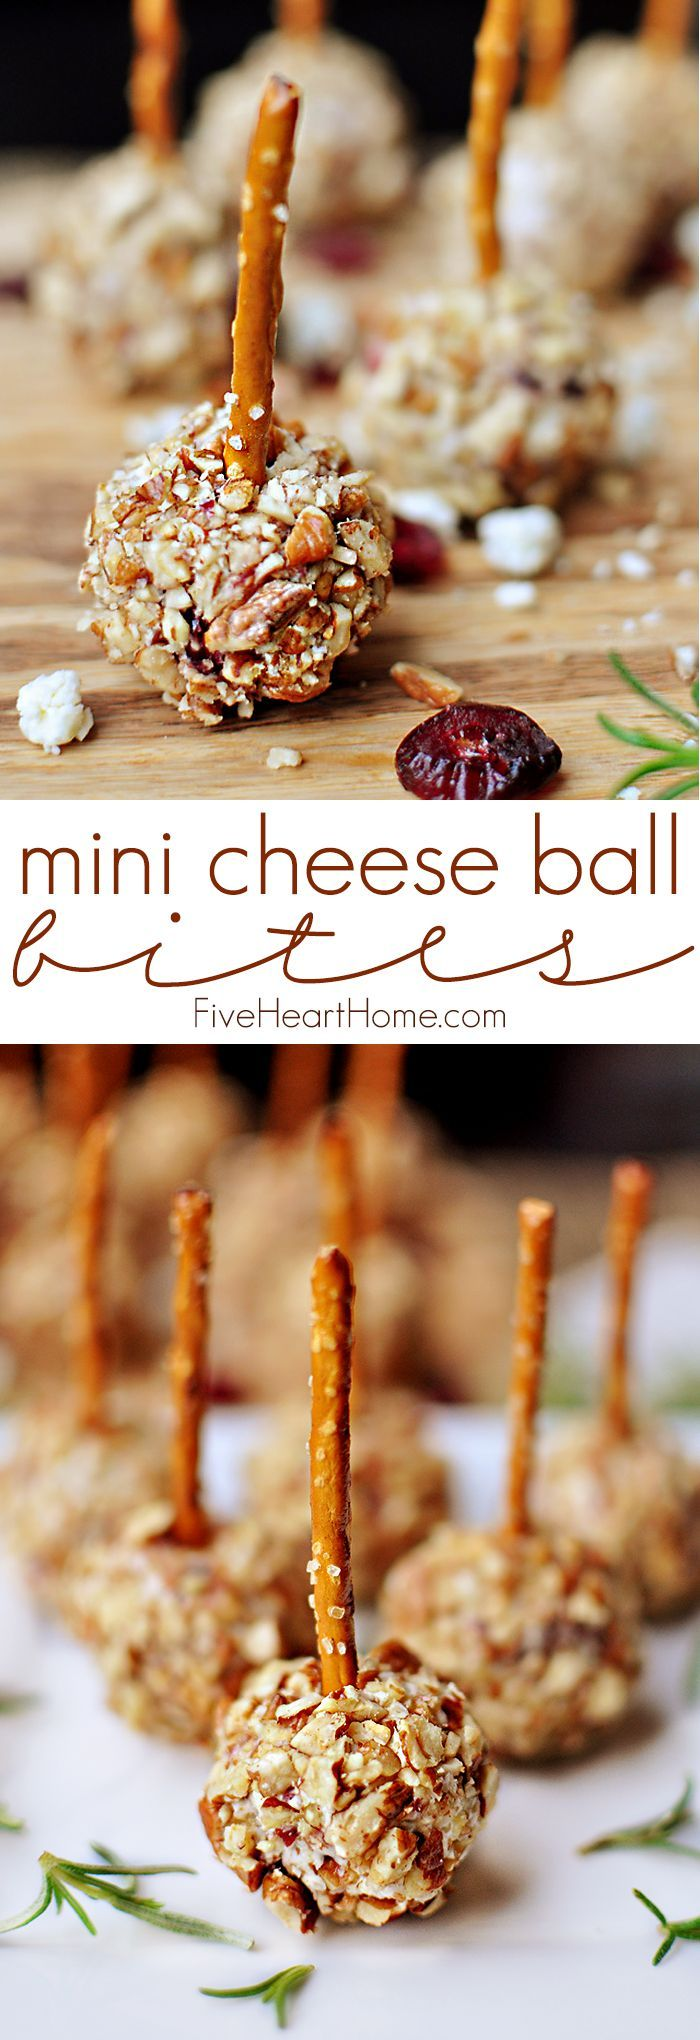 Mini Cheese Ball Bites ~ easy appetizer recipe featuring dried cranberries, blue cheese, toasted pecans, and pretzel skewers, perfect for the holidays or any party or get-together! | FiveHeartHome.com